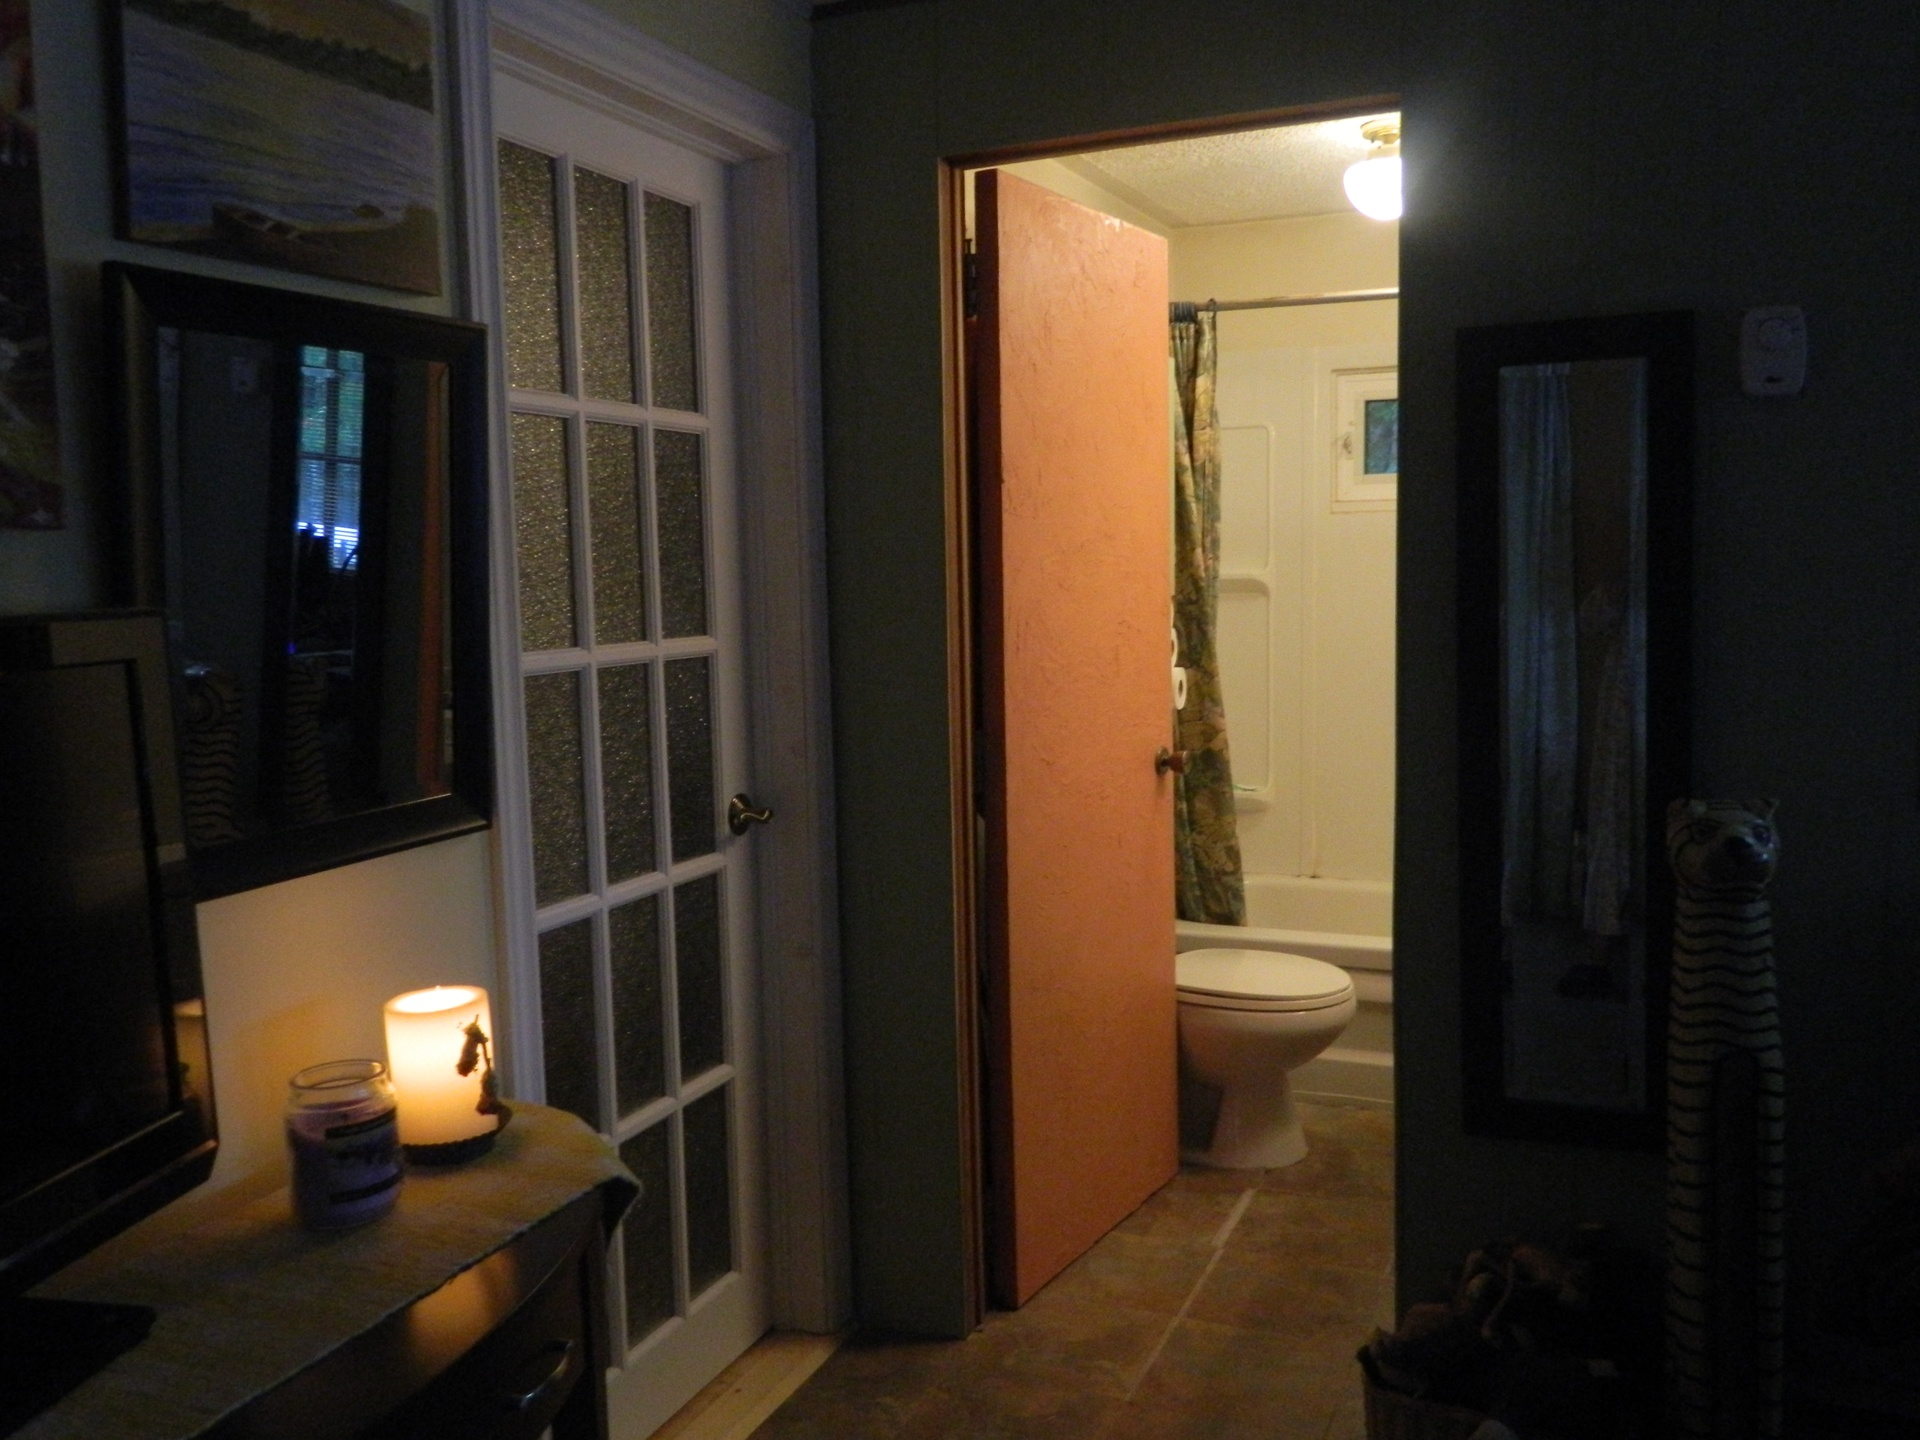 Bathroom in NW side of house